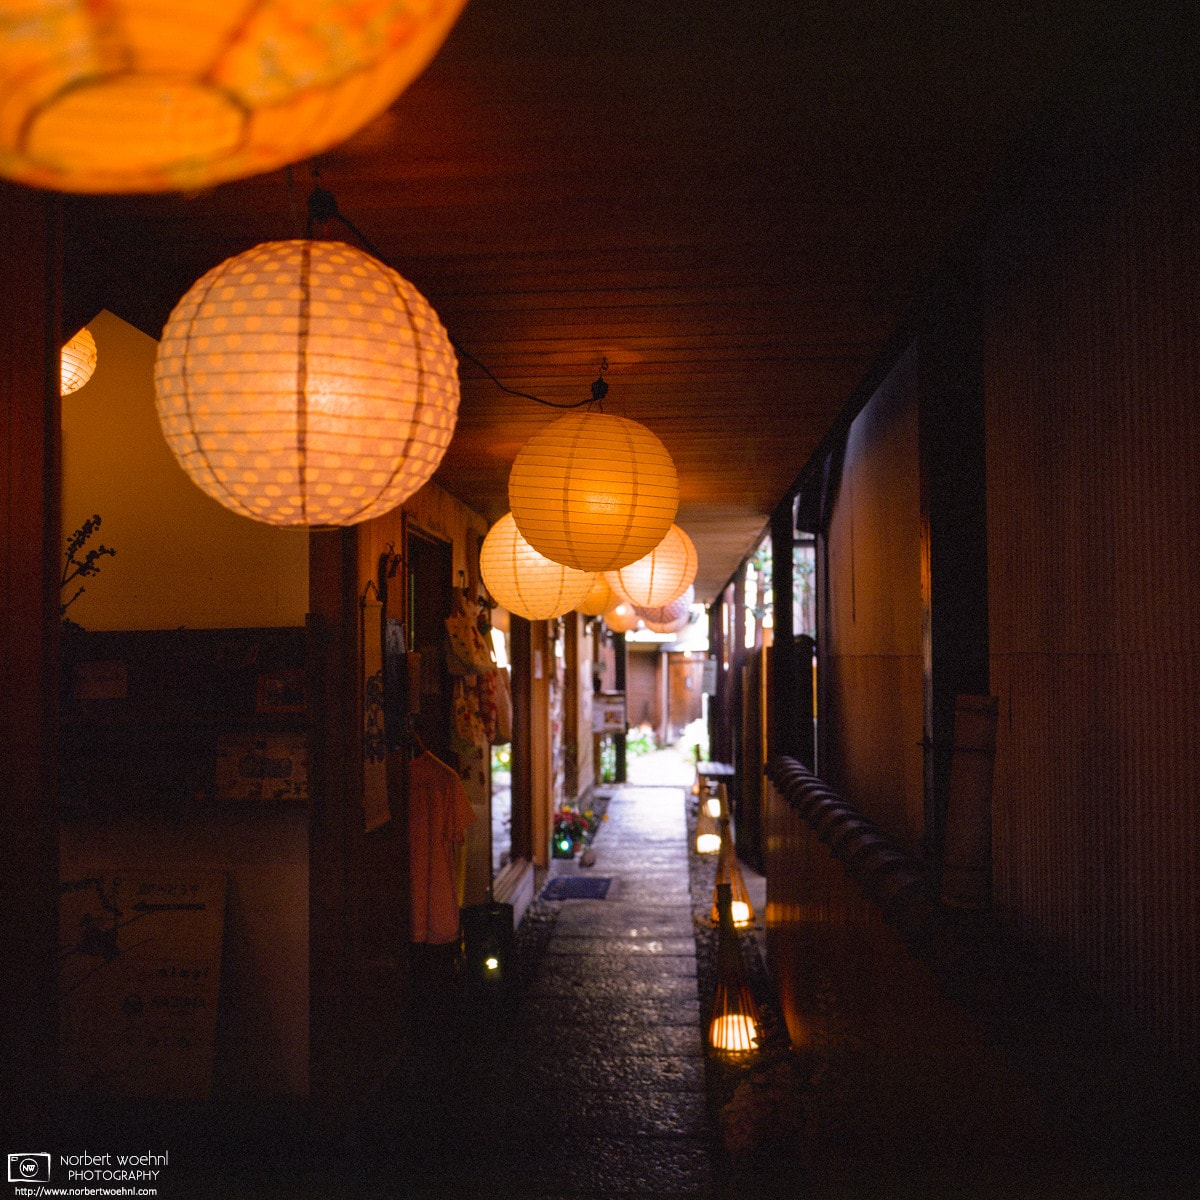 Lamps illuminate a corridor of a building with small shops in the Naramachi district of Nara, Japan.